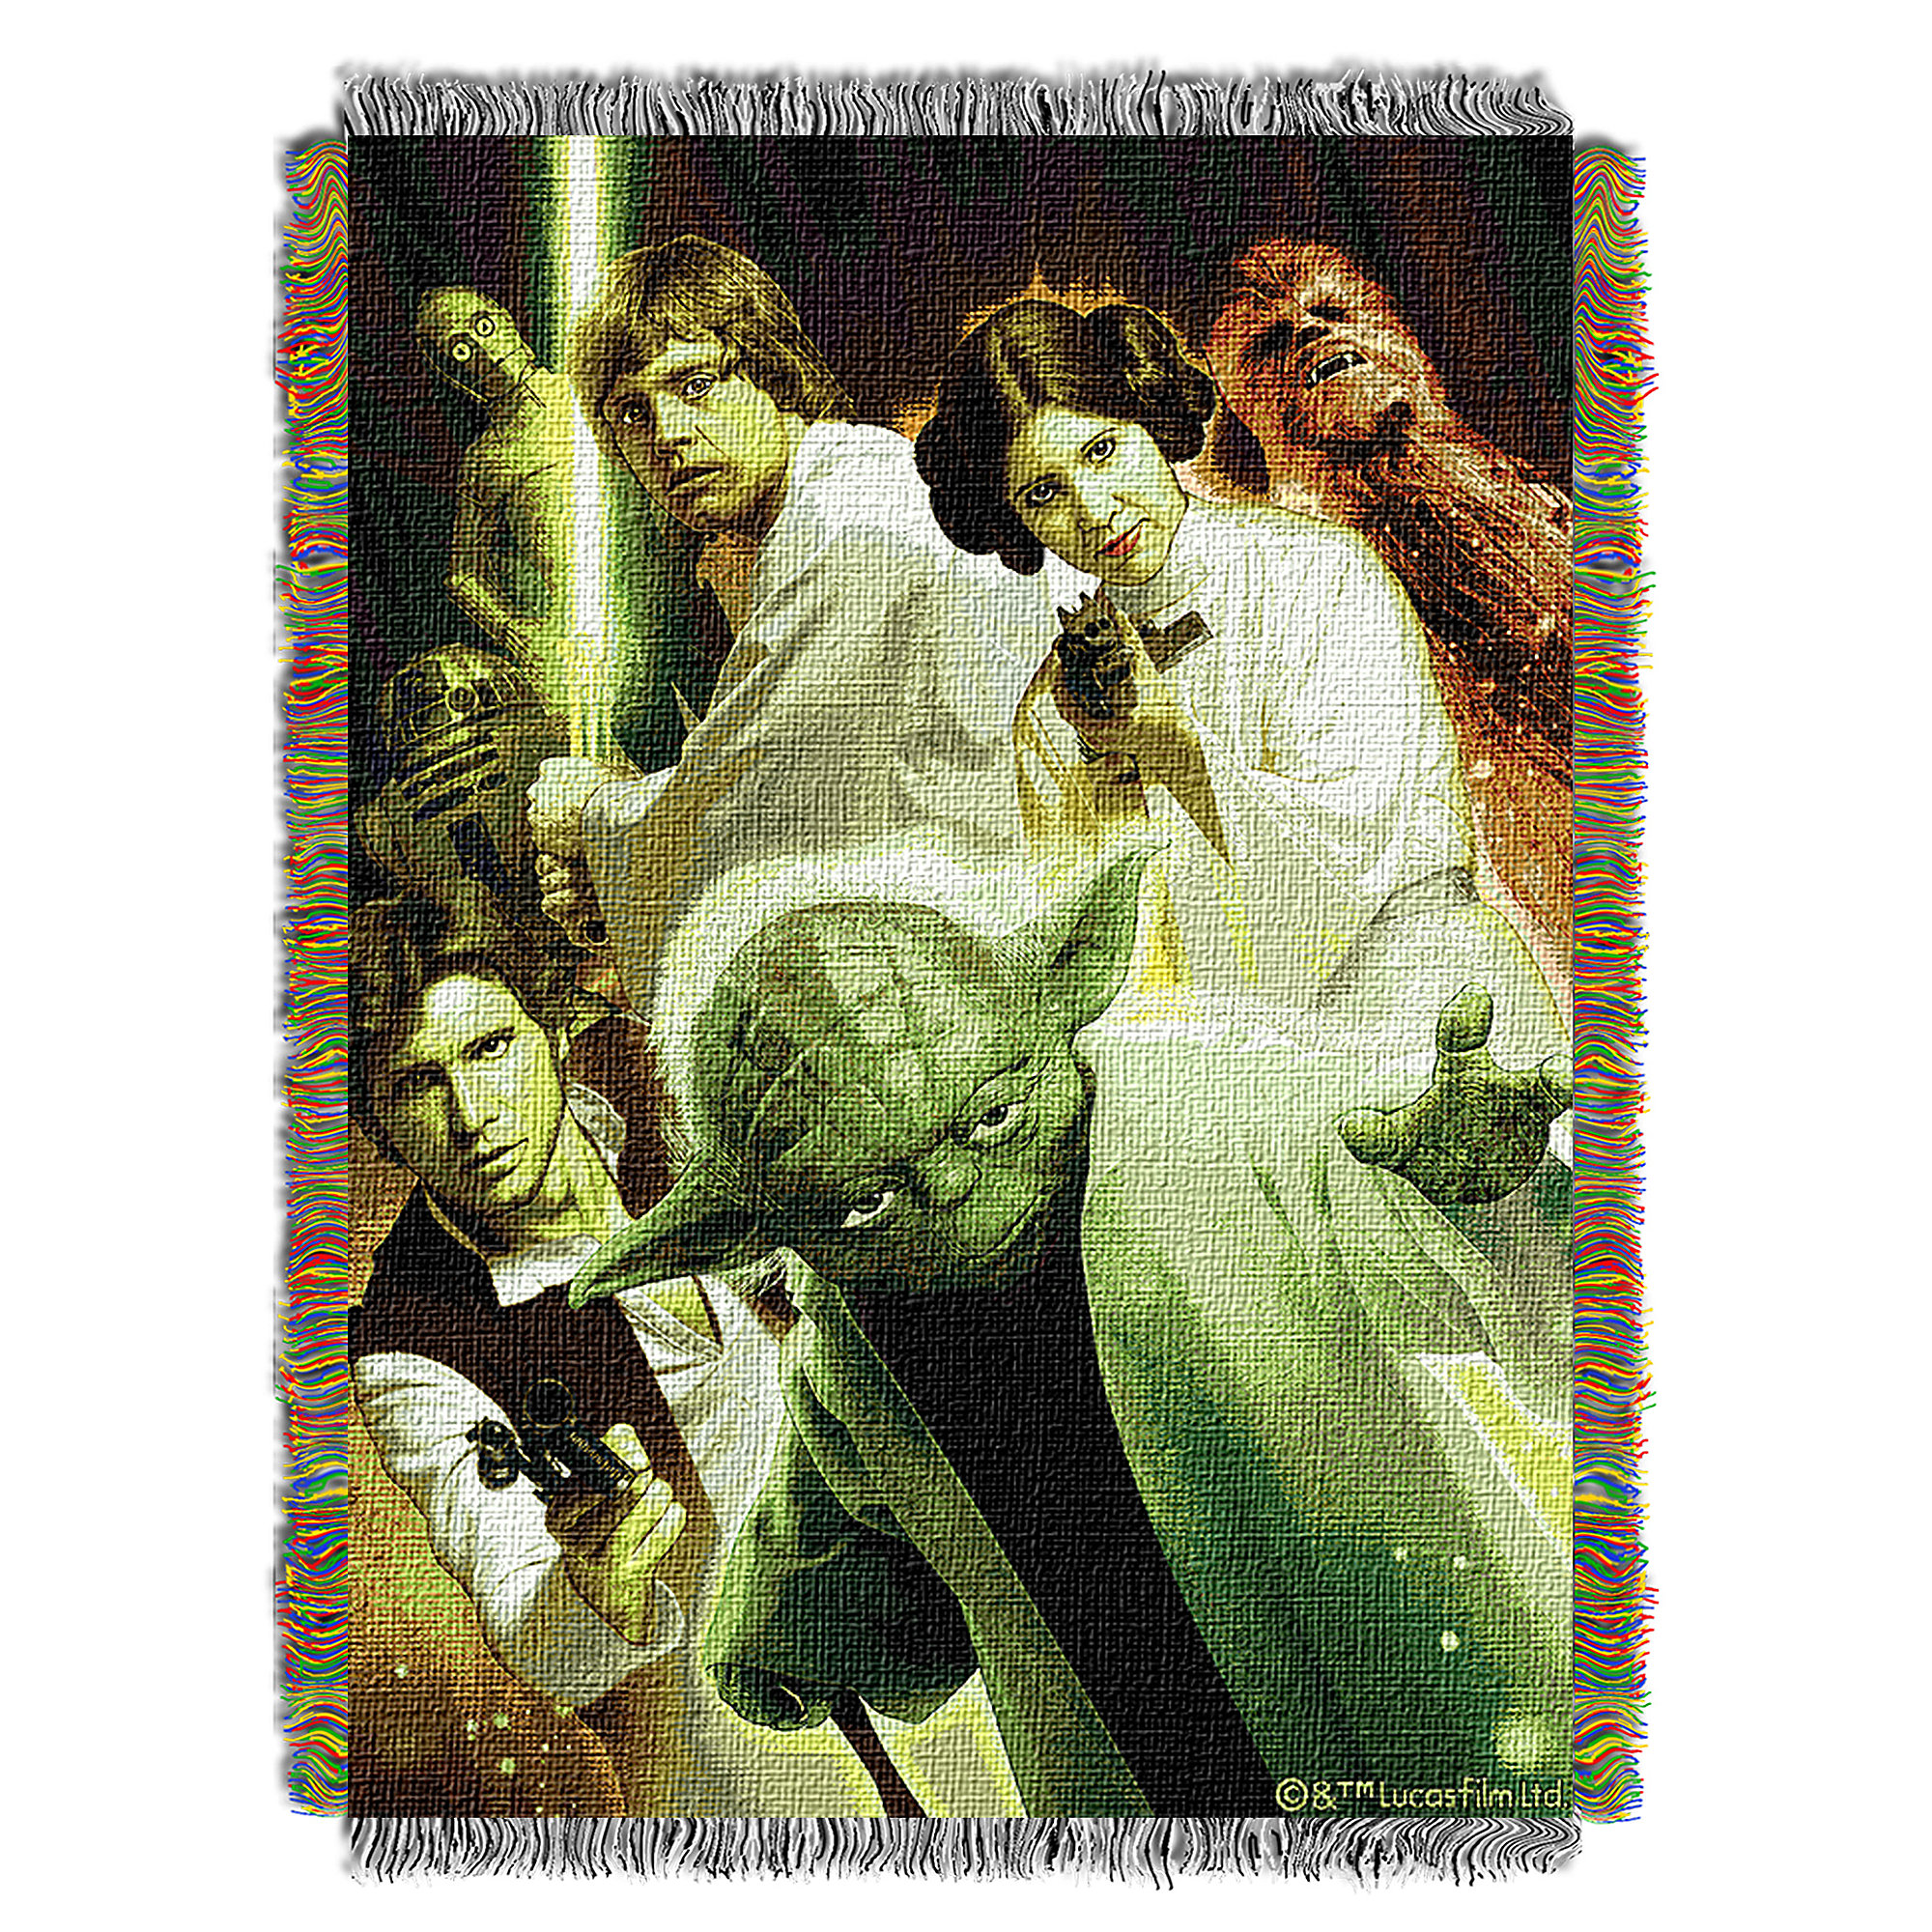 Yoda and Friends Woven Tapestry Throw - Star Wars